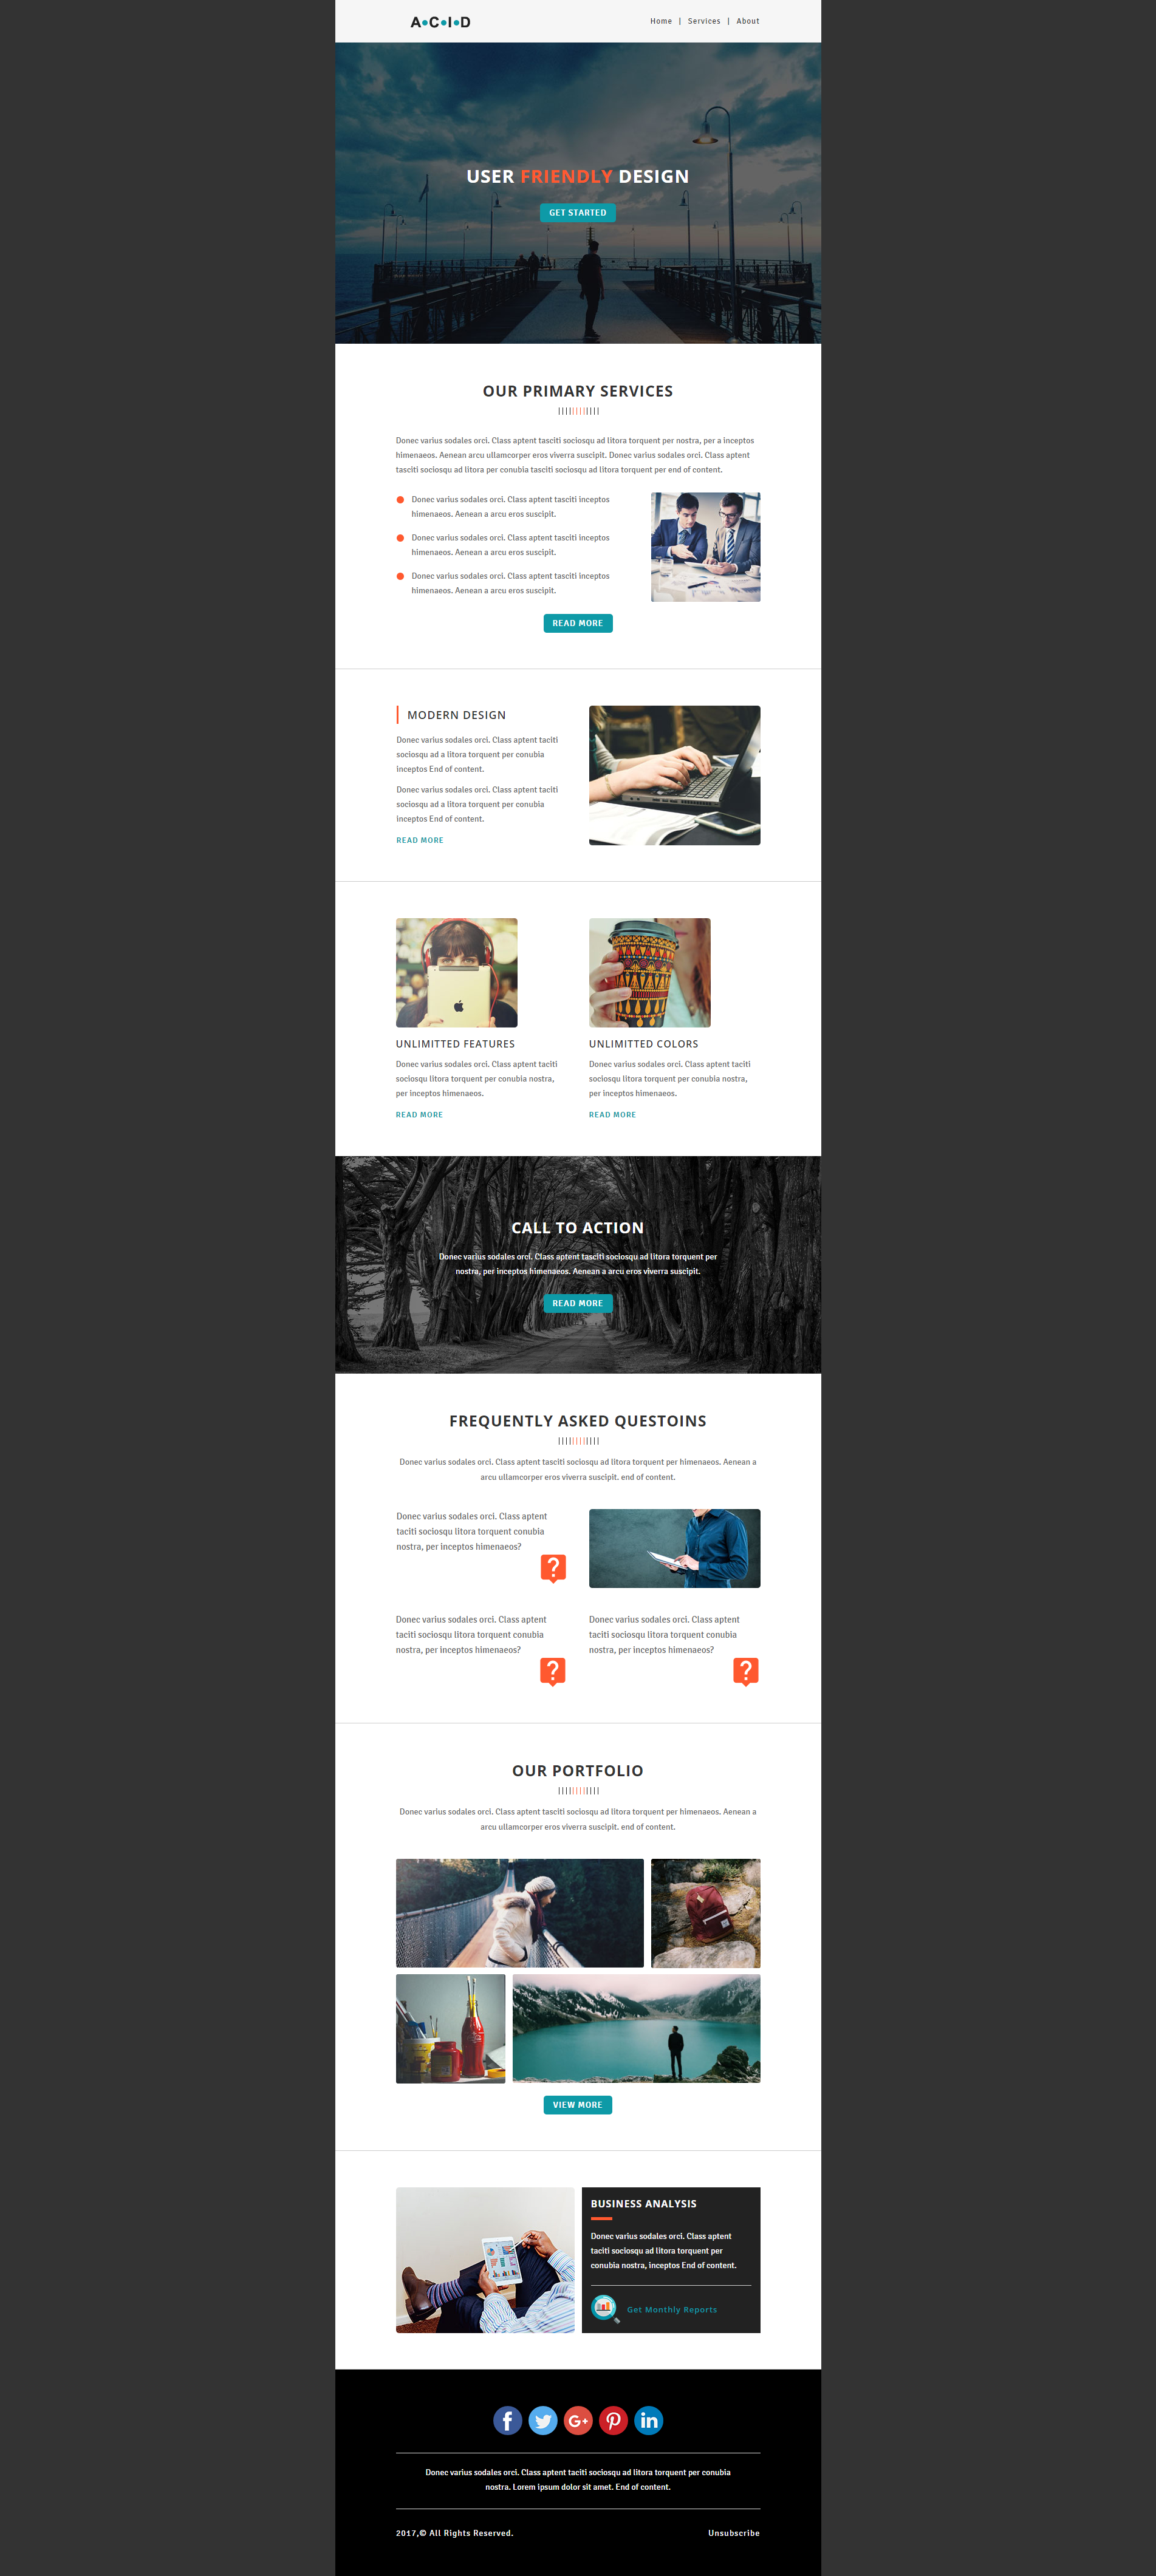 randy_johnso : I will design editable responsive html email template ...